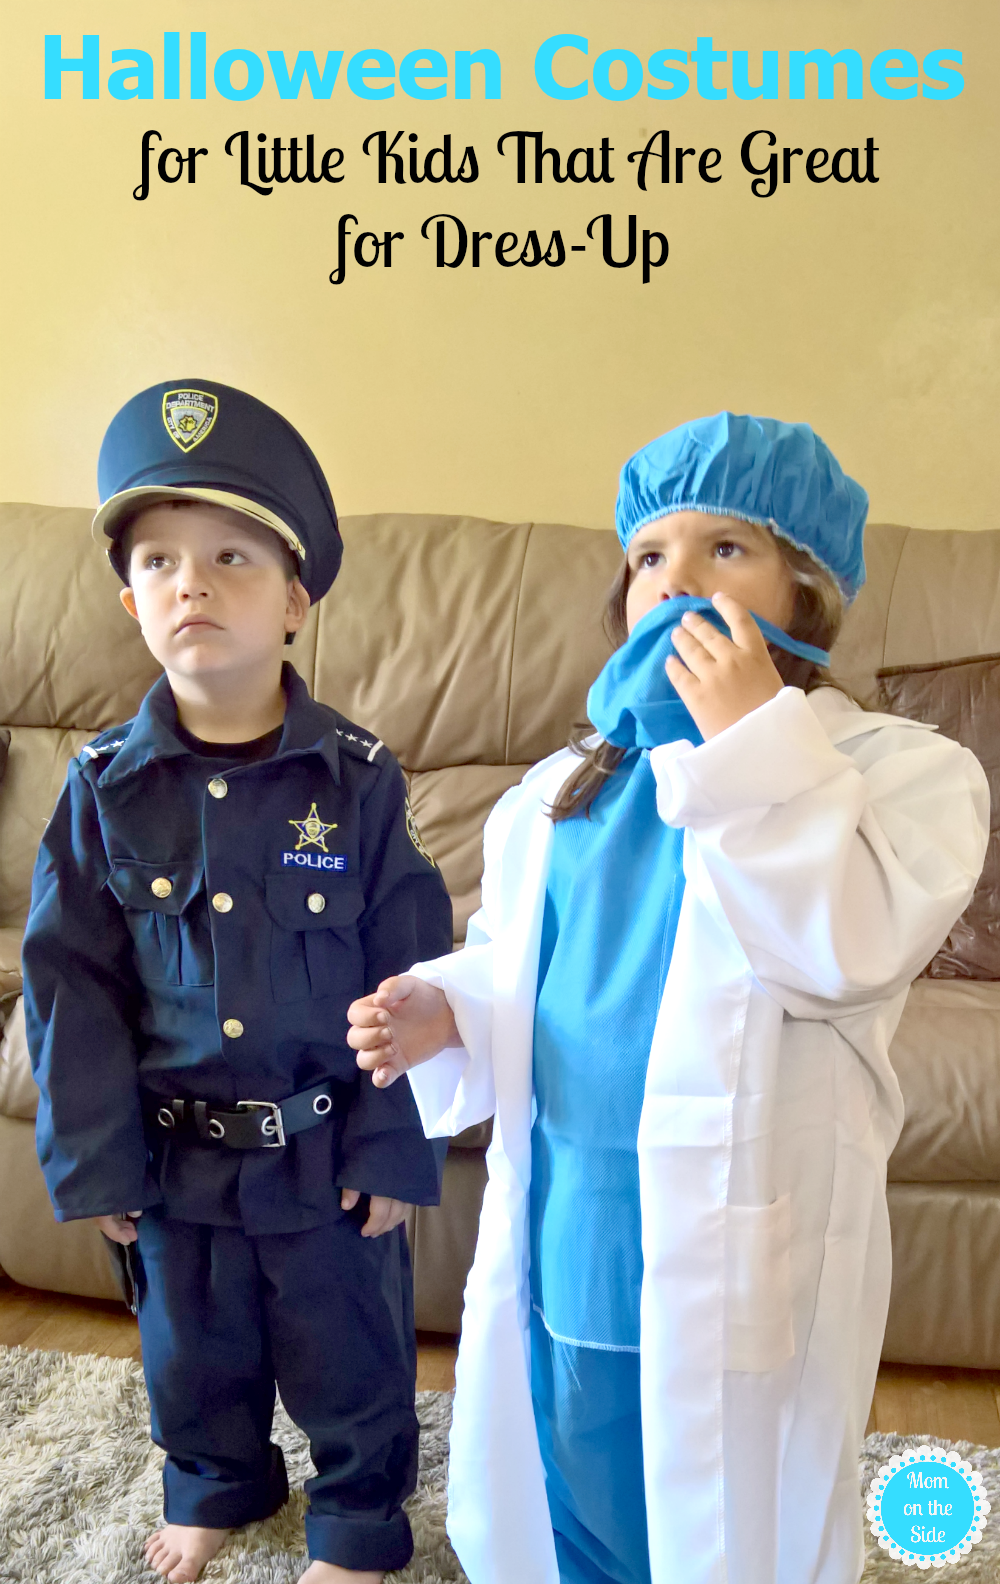 Ideas for Halloween costumes for little kids that are great for dress-up all year long!